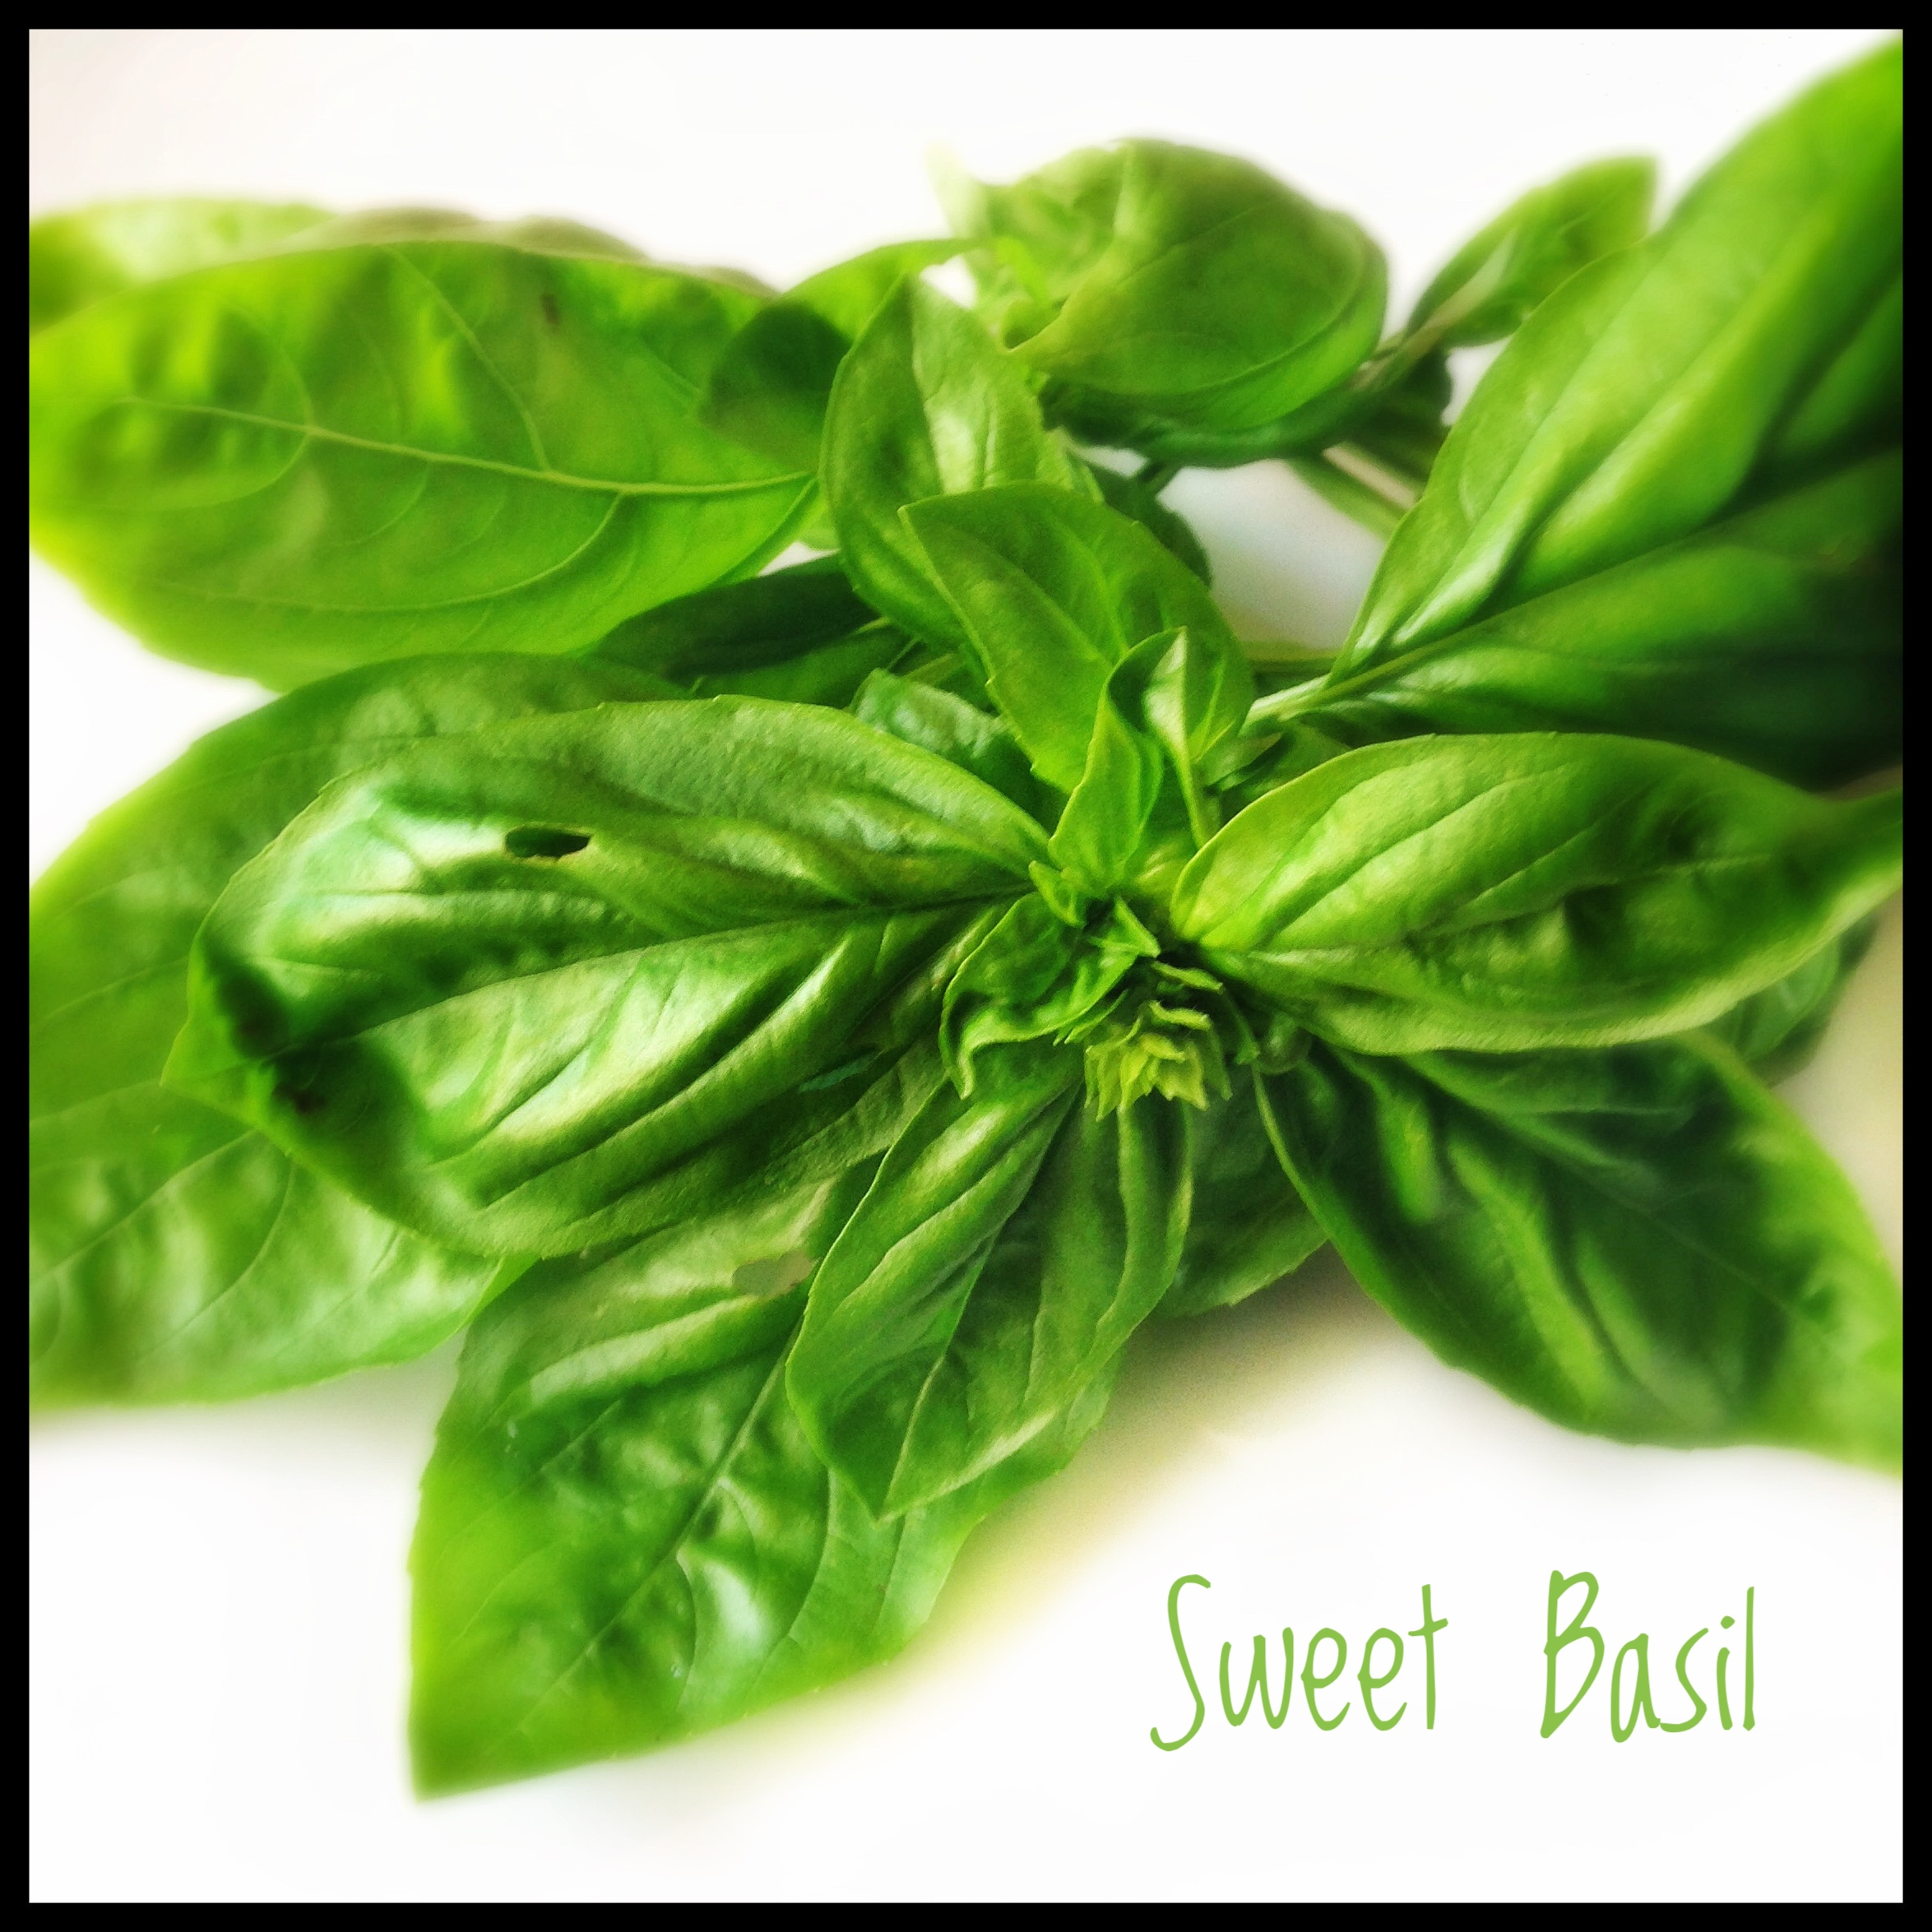 Herbs Basil and Basil Types Heat in The Kitchen